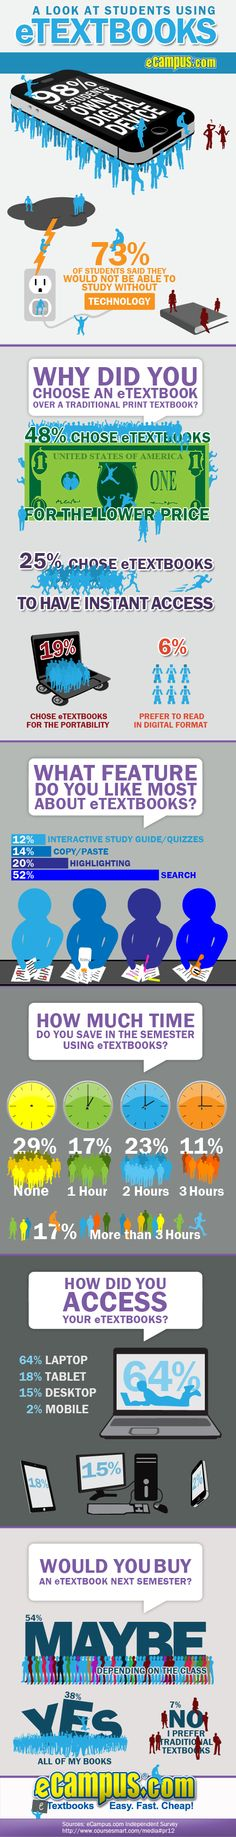 A look at students using eTextbooks, eCampus.com Library of College Infographics